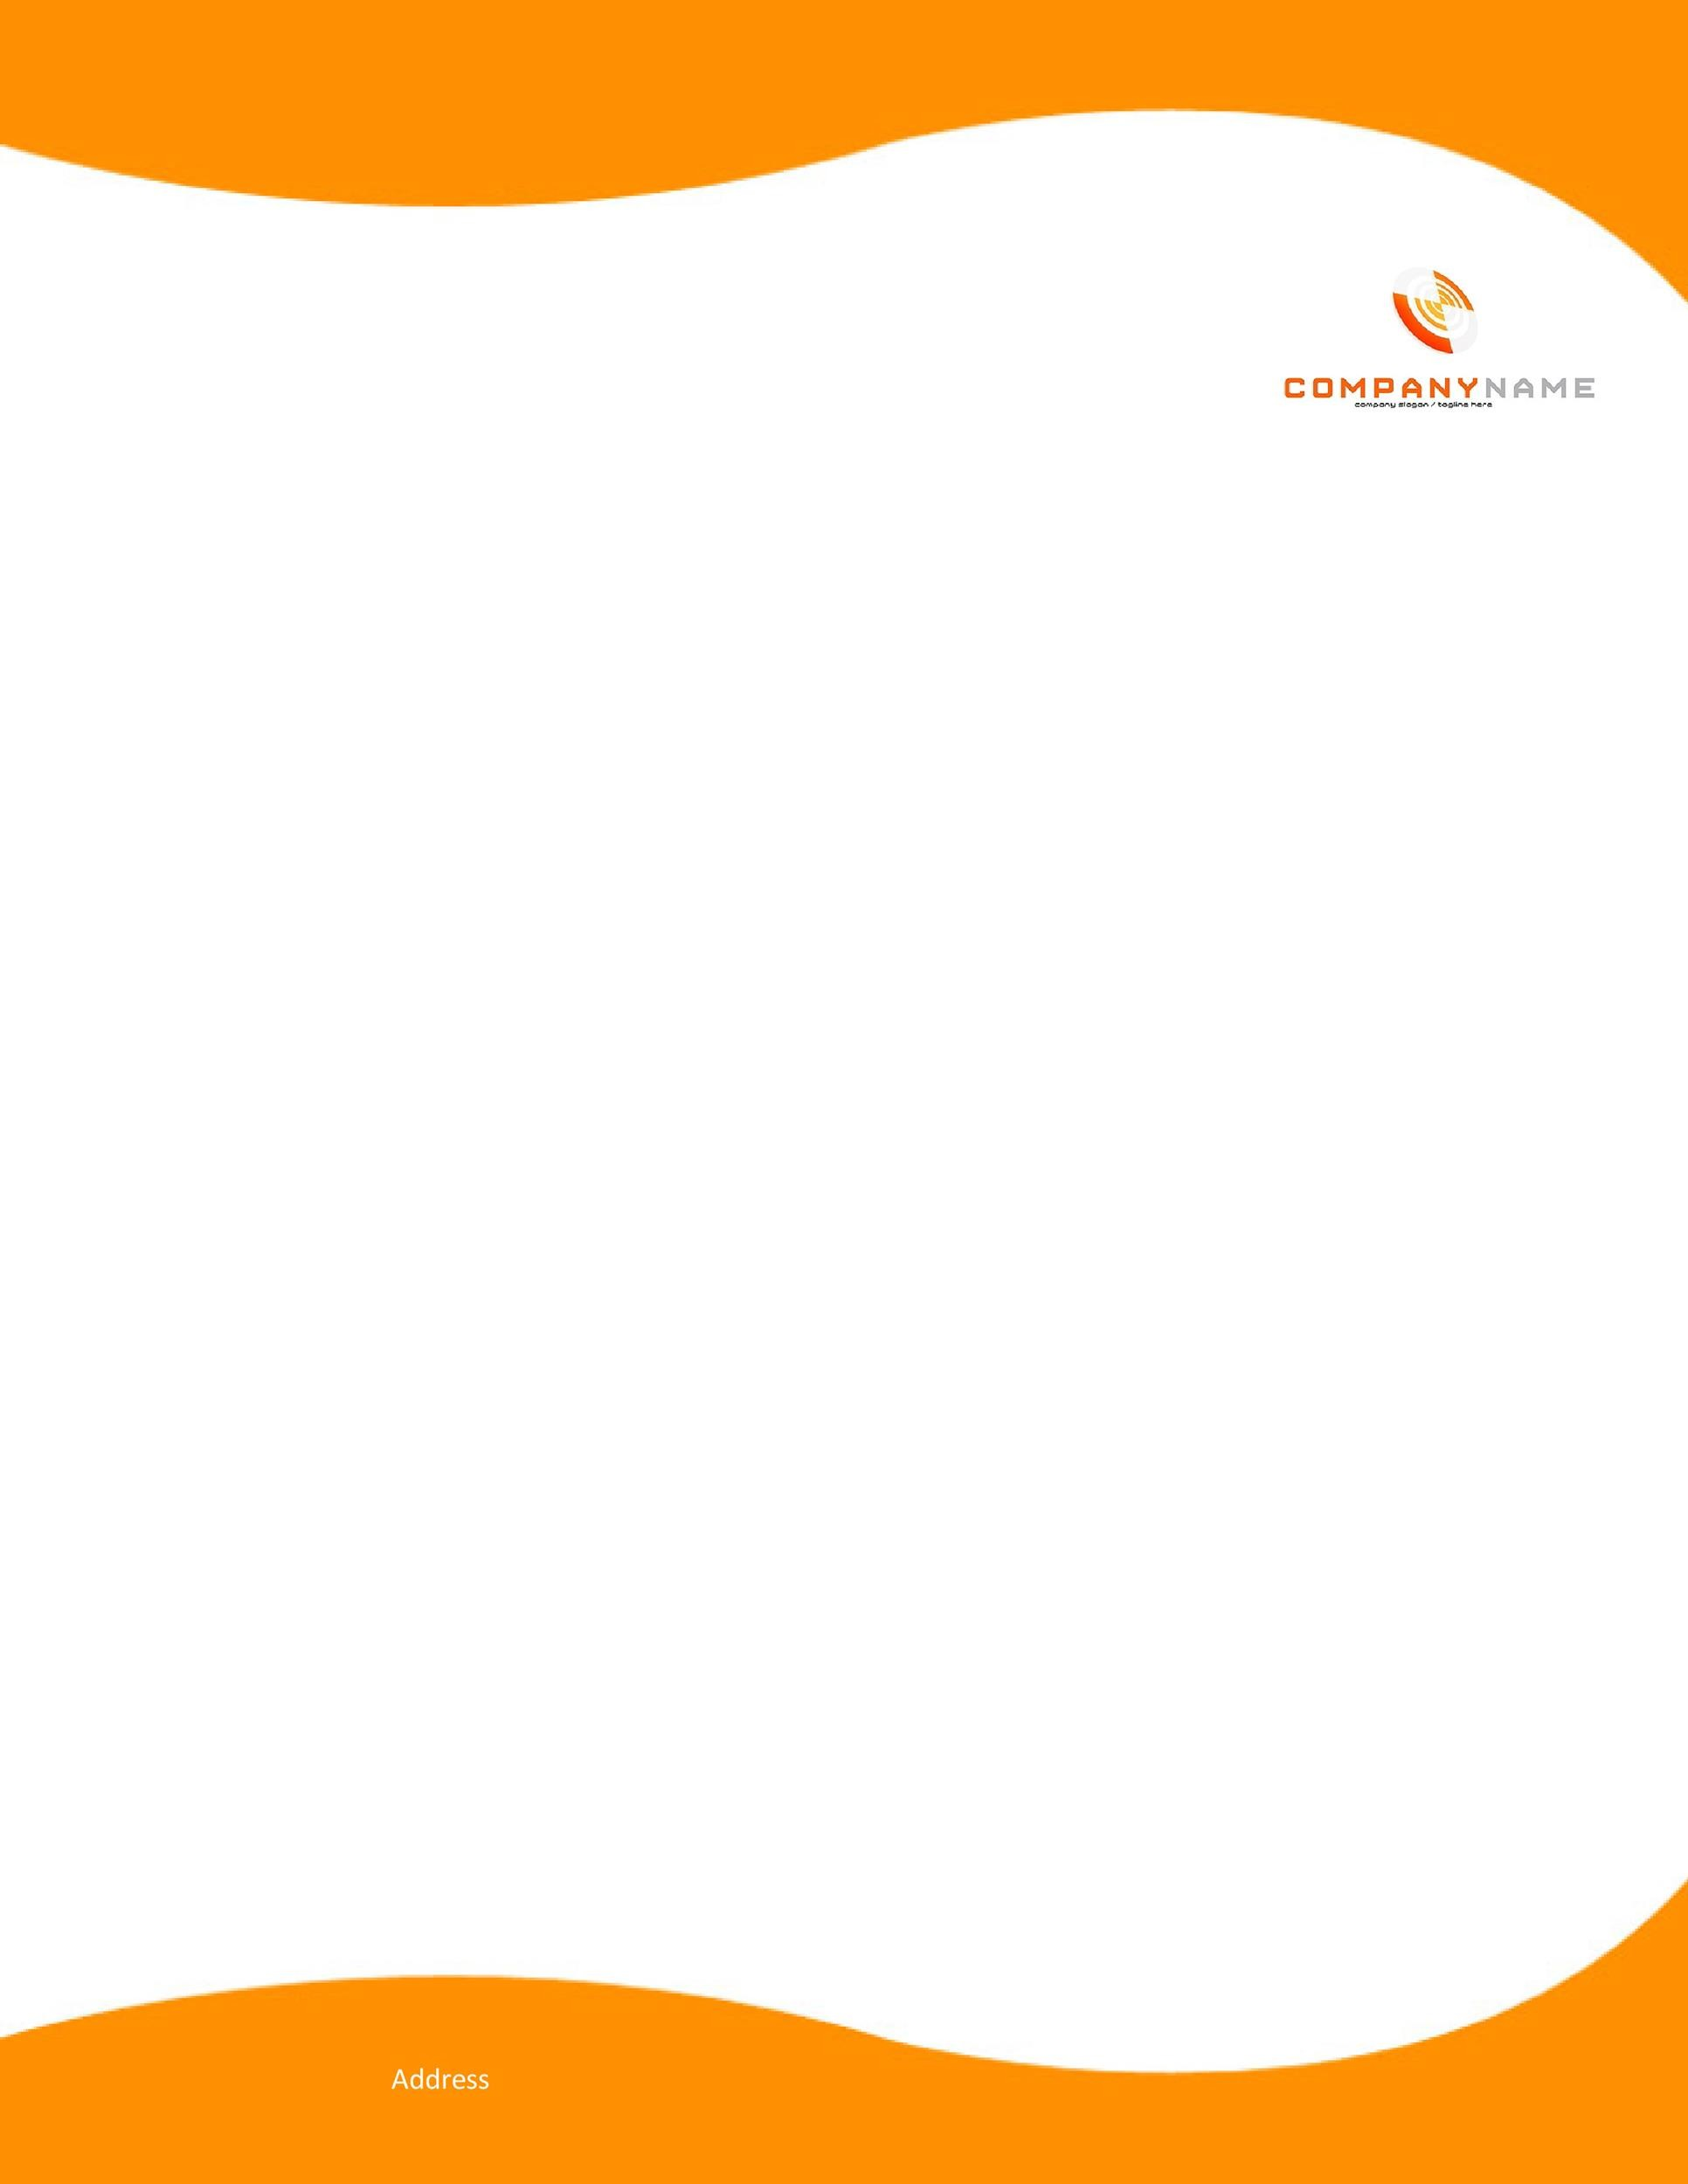 Printable Letterhead Template Word 01  Best Free Letterhead Templates